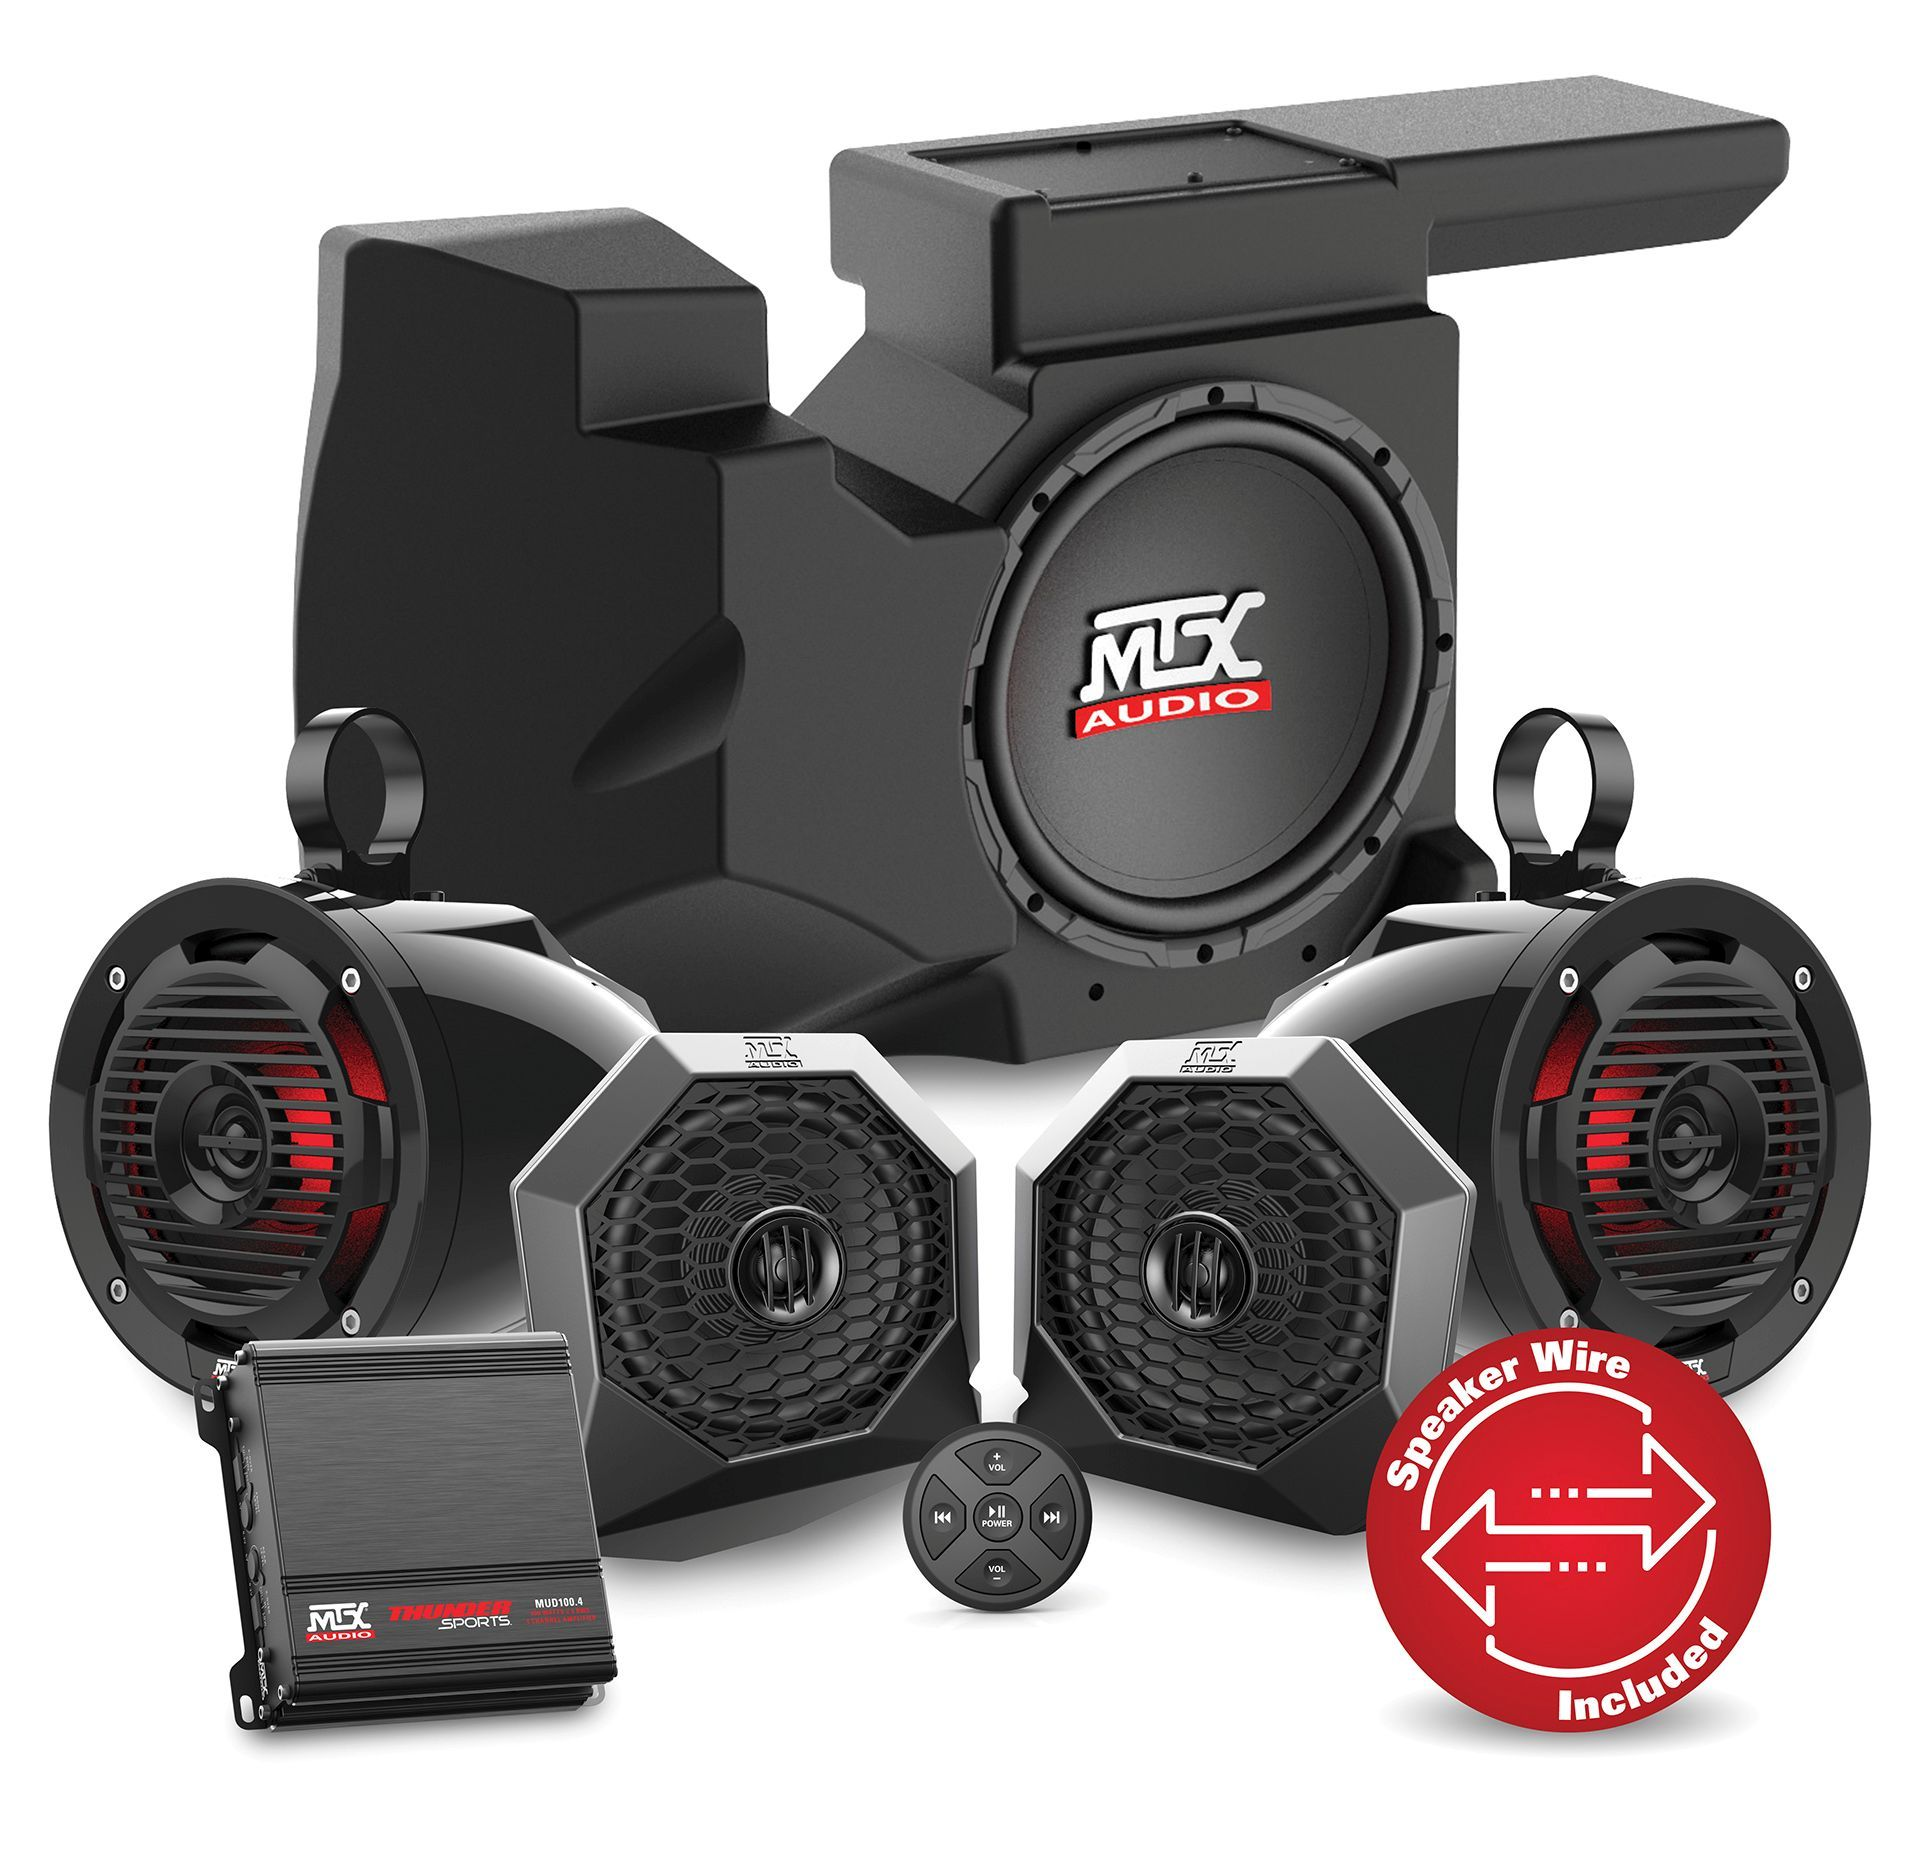 Wiring Subwoofers In Series A Subwoofer